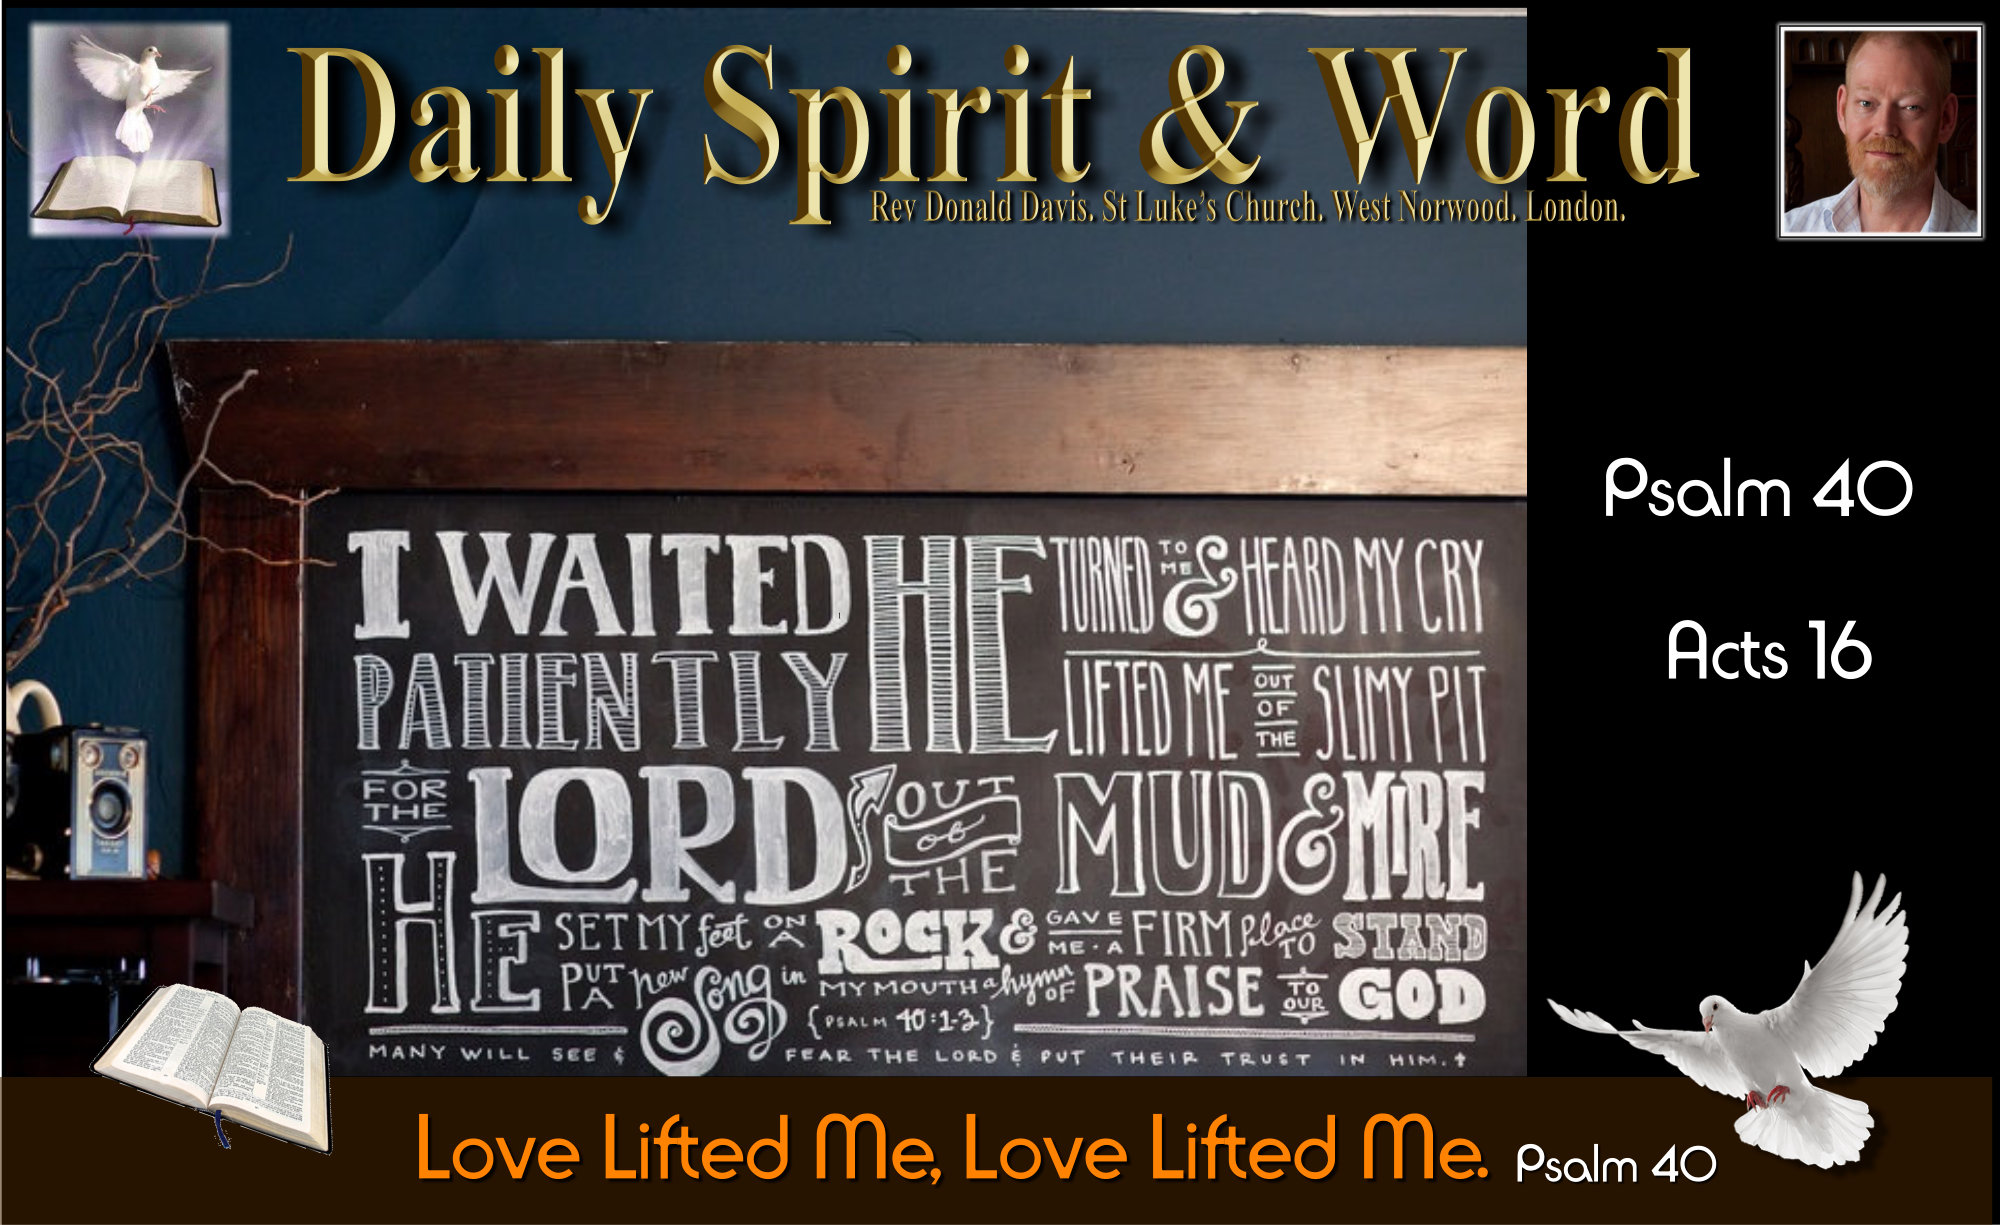 Love lifted me, rock, feet, firm place, stand, set free, freedom, rescue,